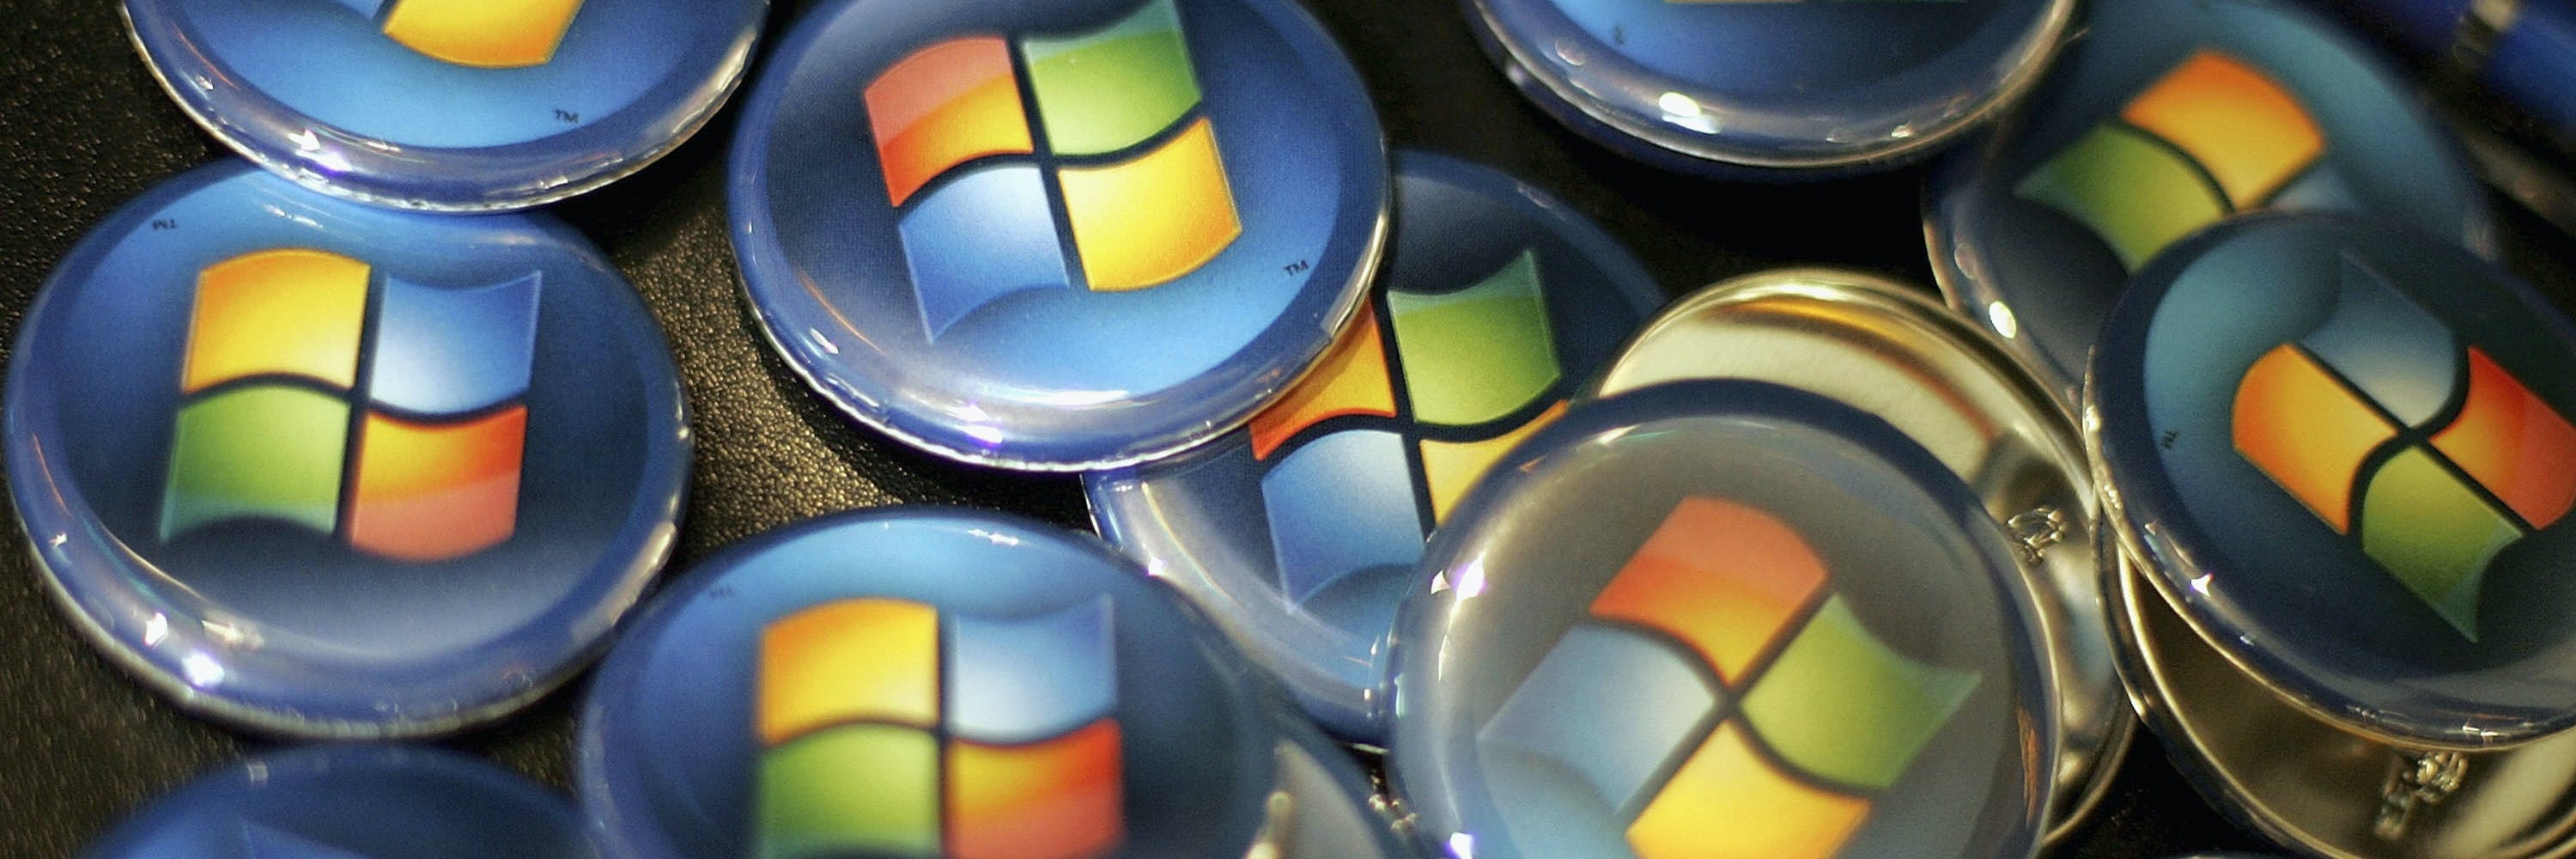 SAN FRANCISCO - JANUARY 29:  Buttons with the Microsoft logo are seen at a Comp USA store January 29, 2007 in San Francisco, California. More than five years in the making, Micorsoft launched Vista, is the latest edition of the Windows operating system and an updated version of Office.  (Photo by Justin Sullivan/Getty Images)